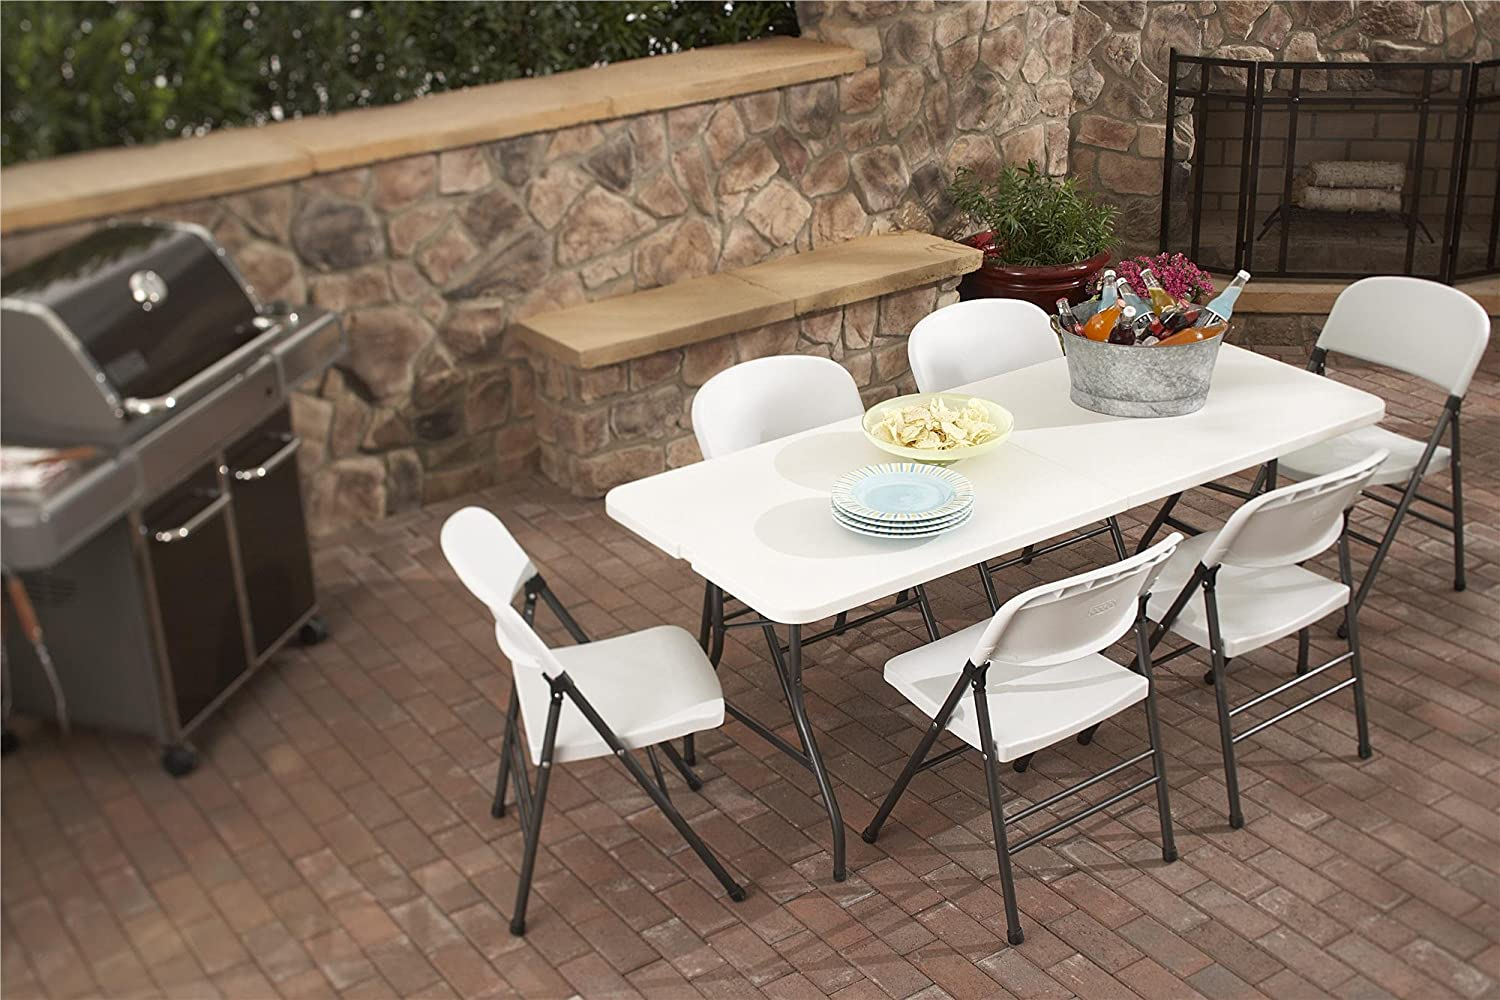 cosco products centerfold folding table 6feet white specked pewter amazonca home u0026 kitchen - 6 Foot Folding Table